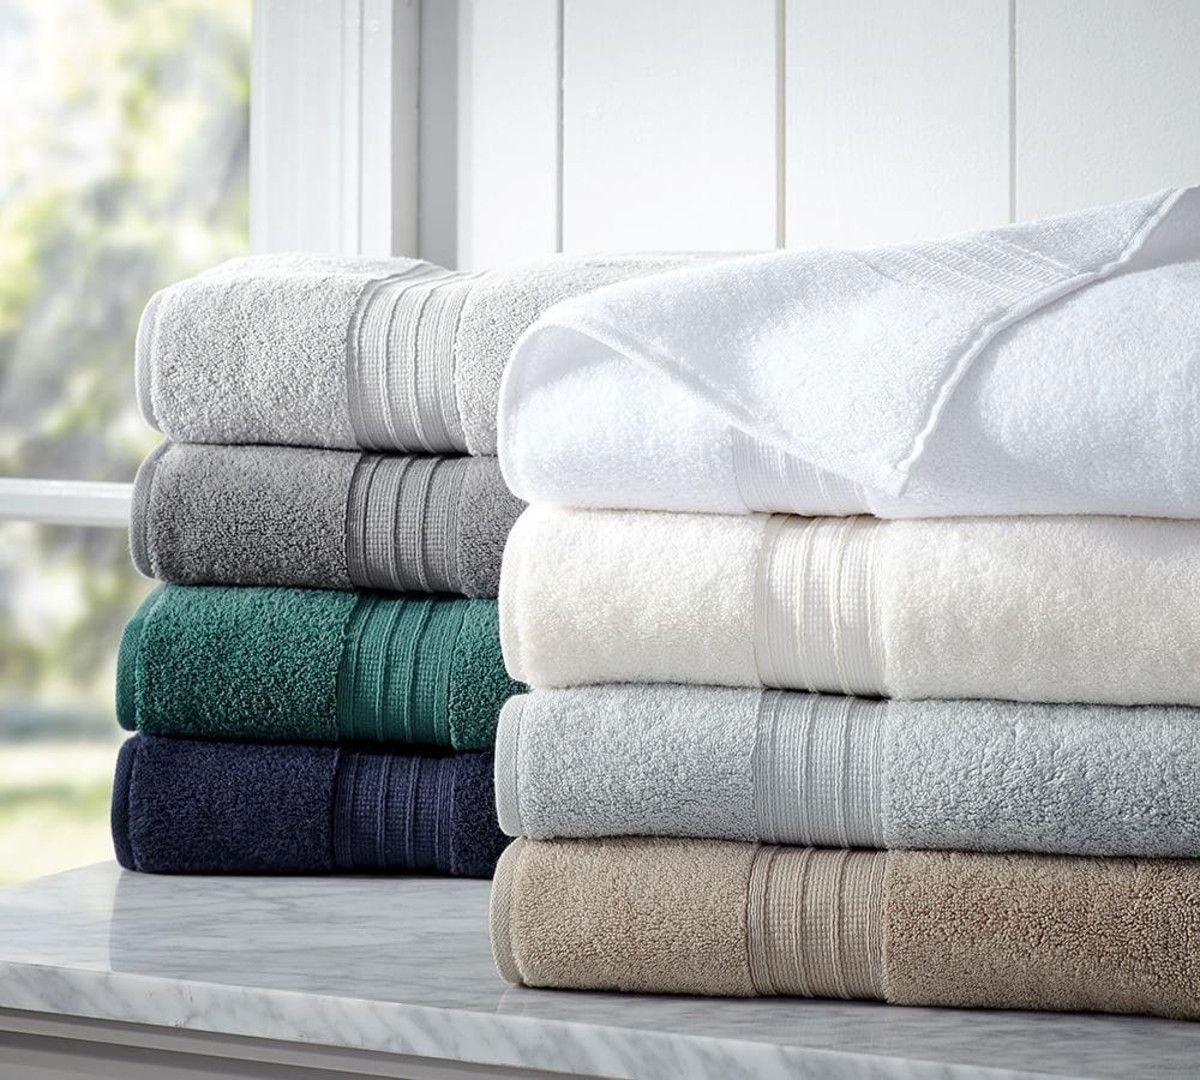 Hydrocotton Bath Towels Cool Hydrocotton Bath Towels  Home  Pinterest  Towels And Bath Inspiration